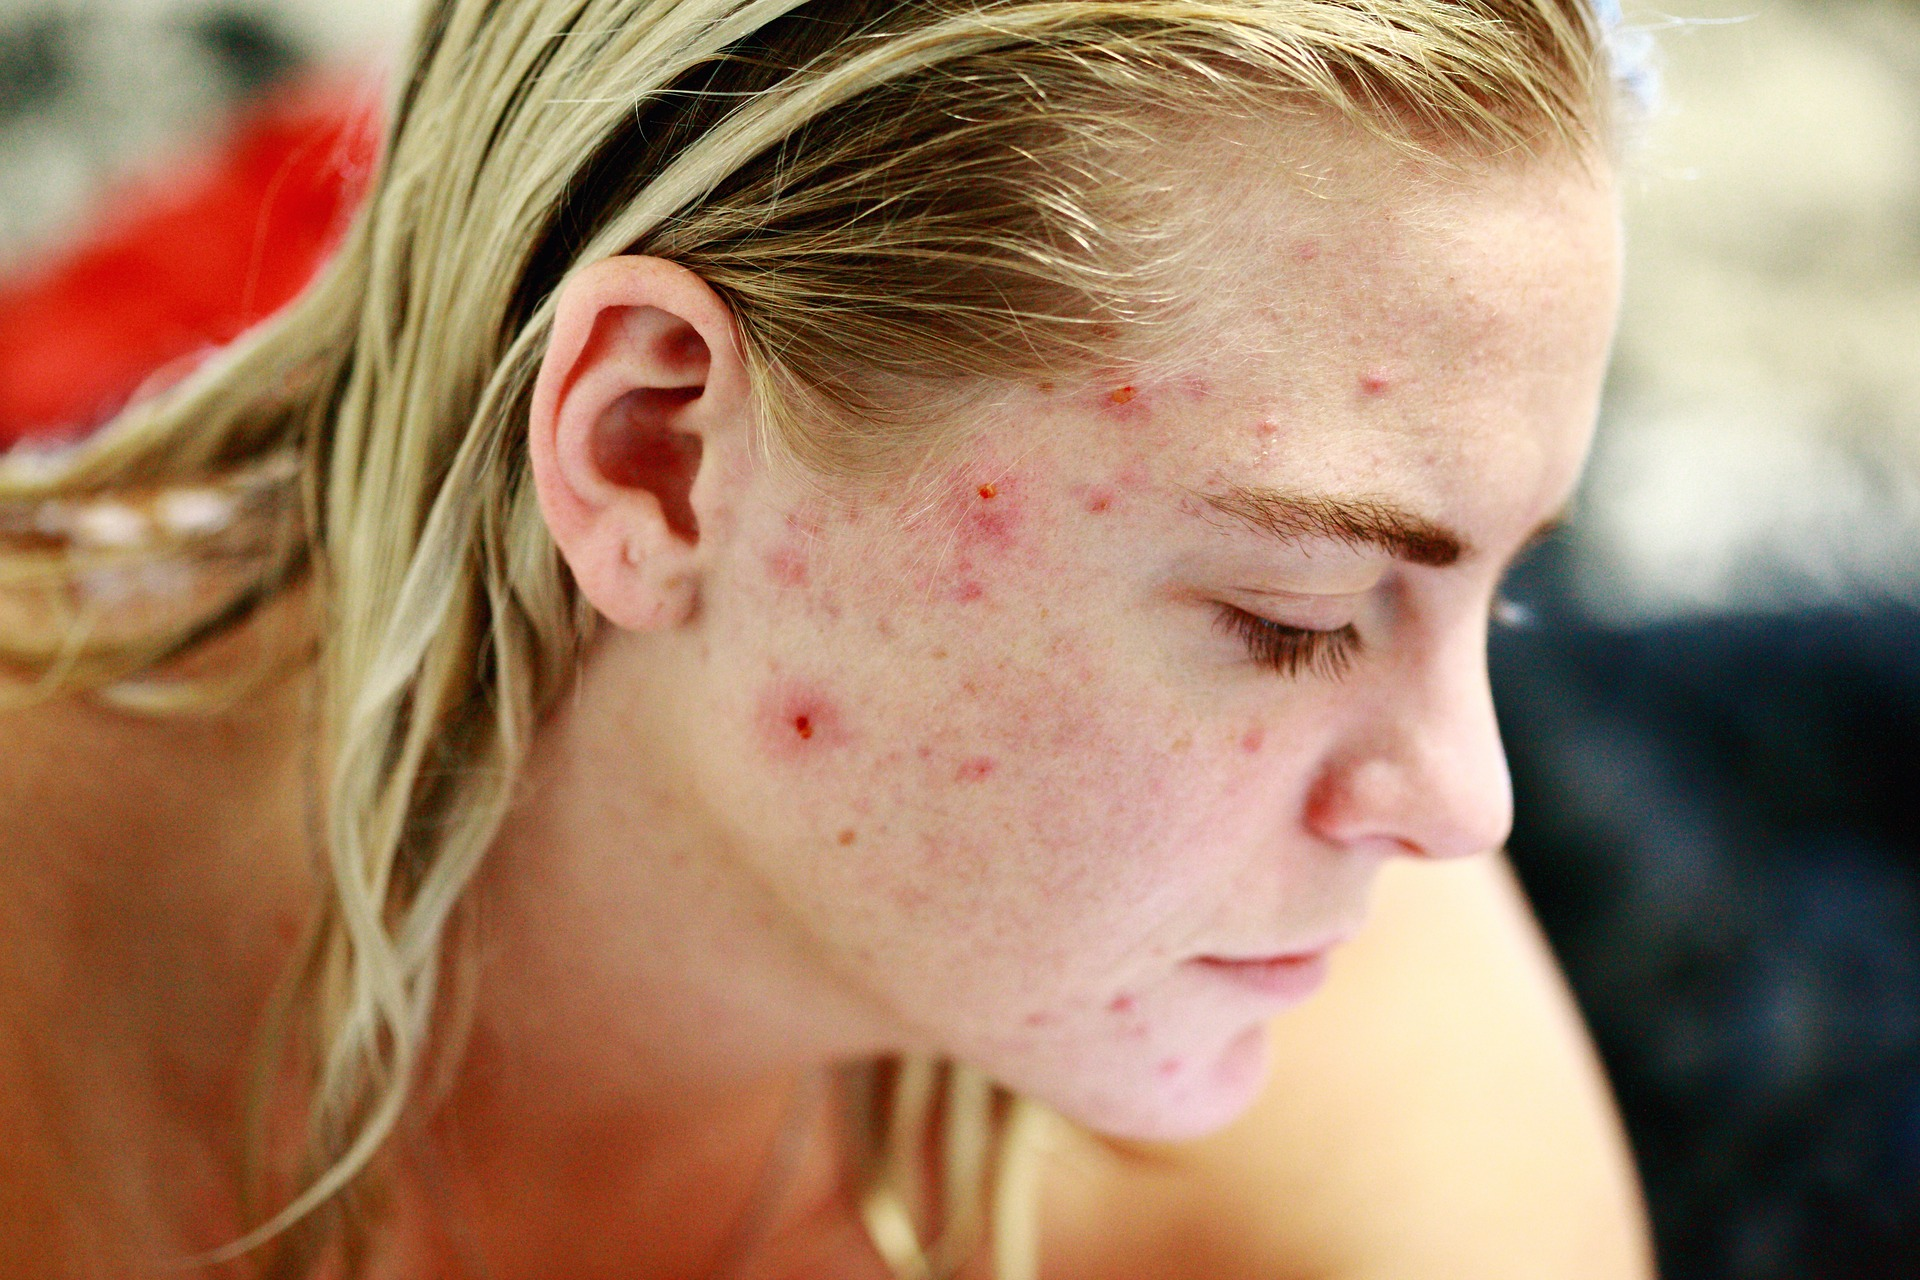 How to Naturally Get Rid of Acne Scars